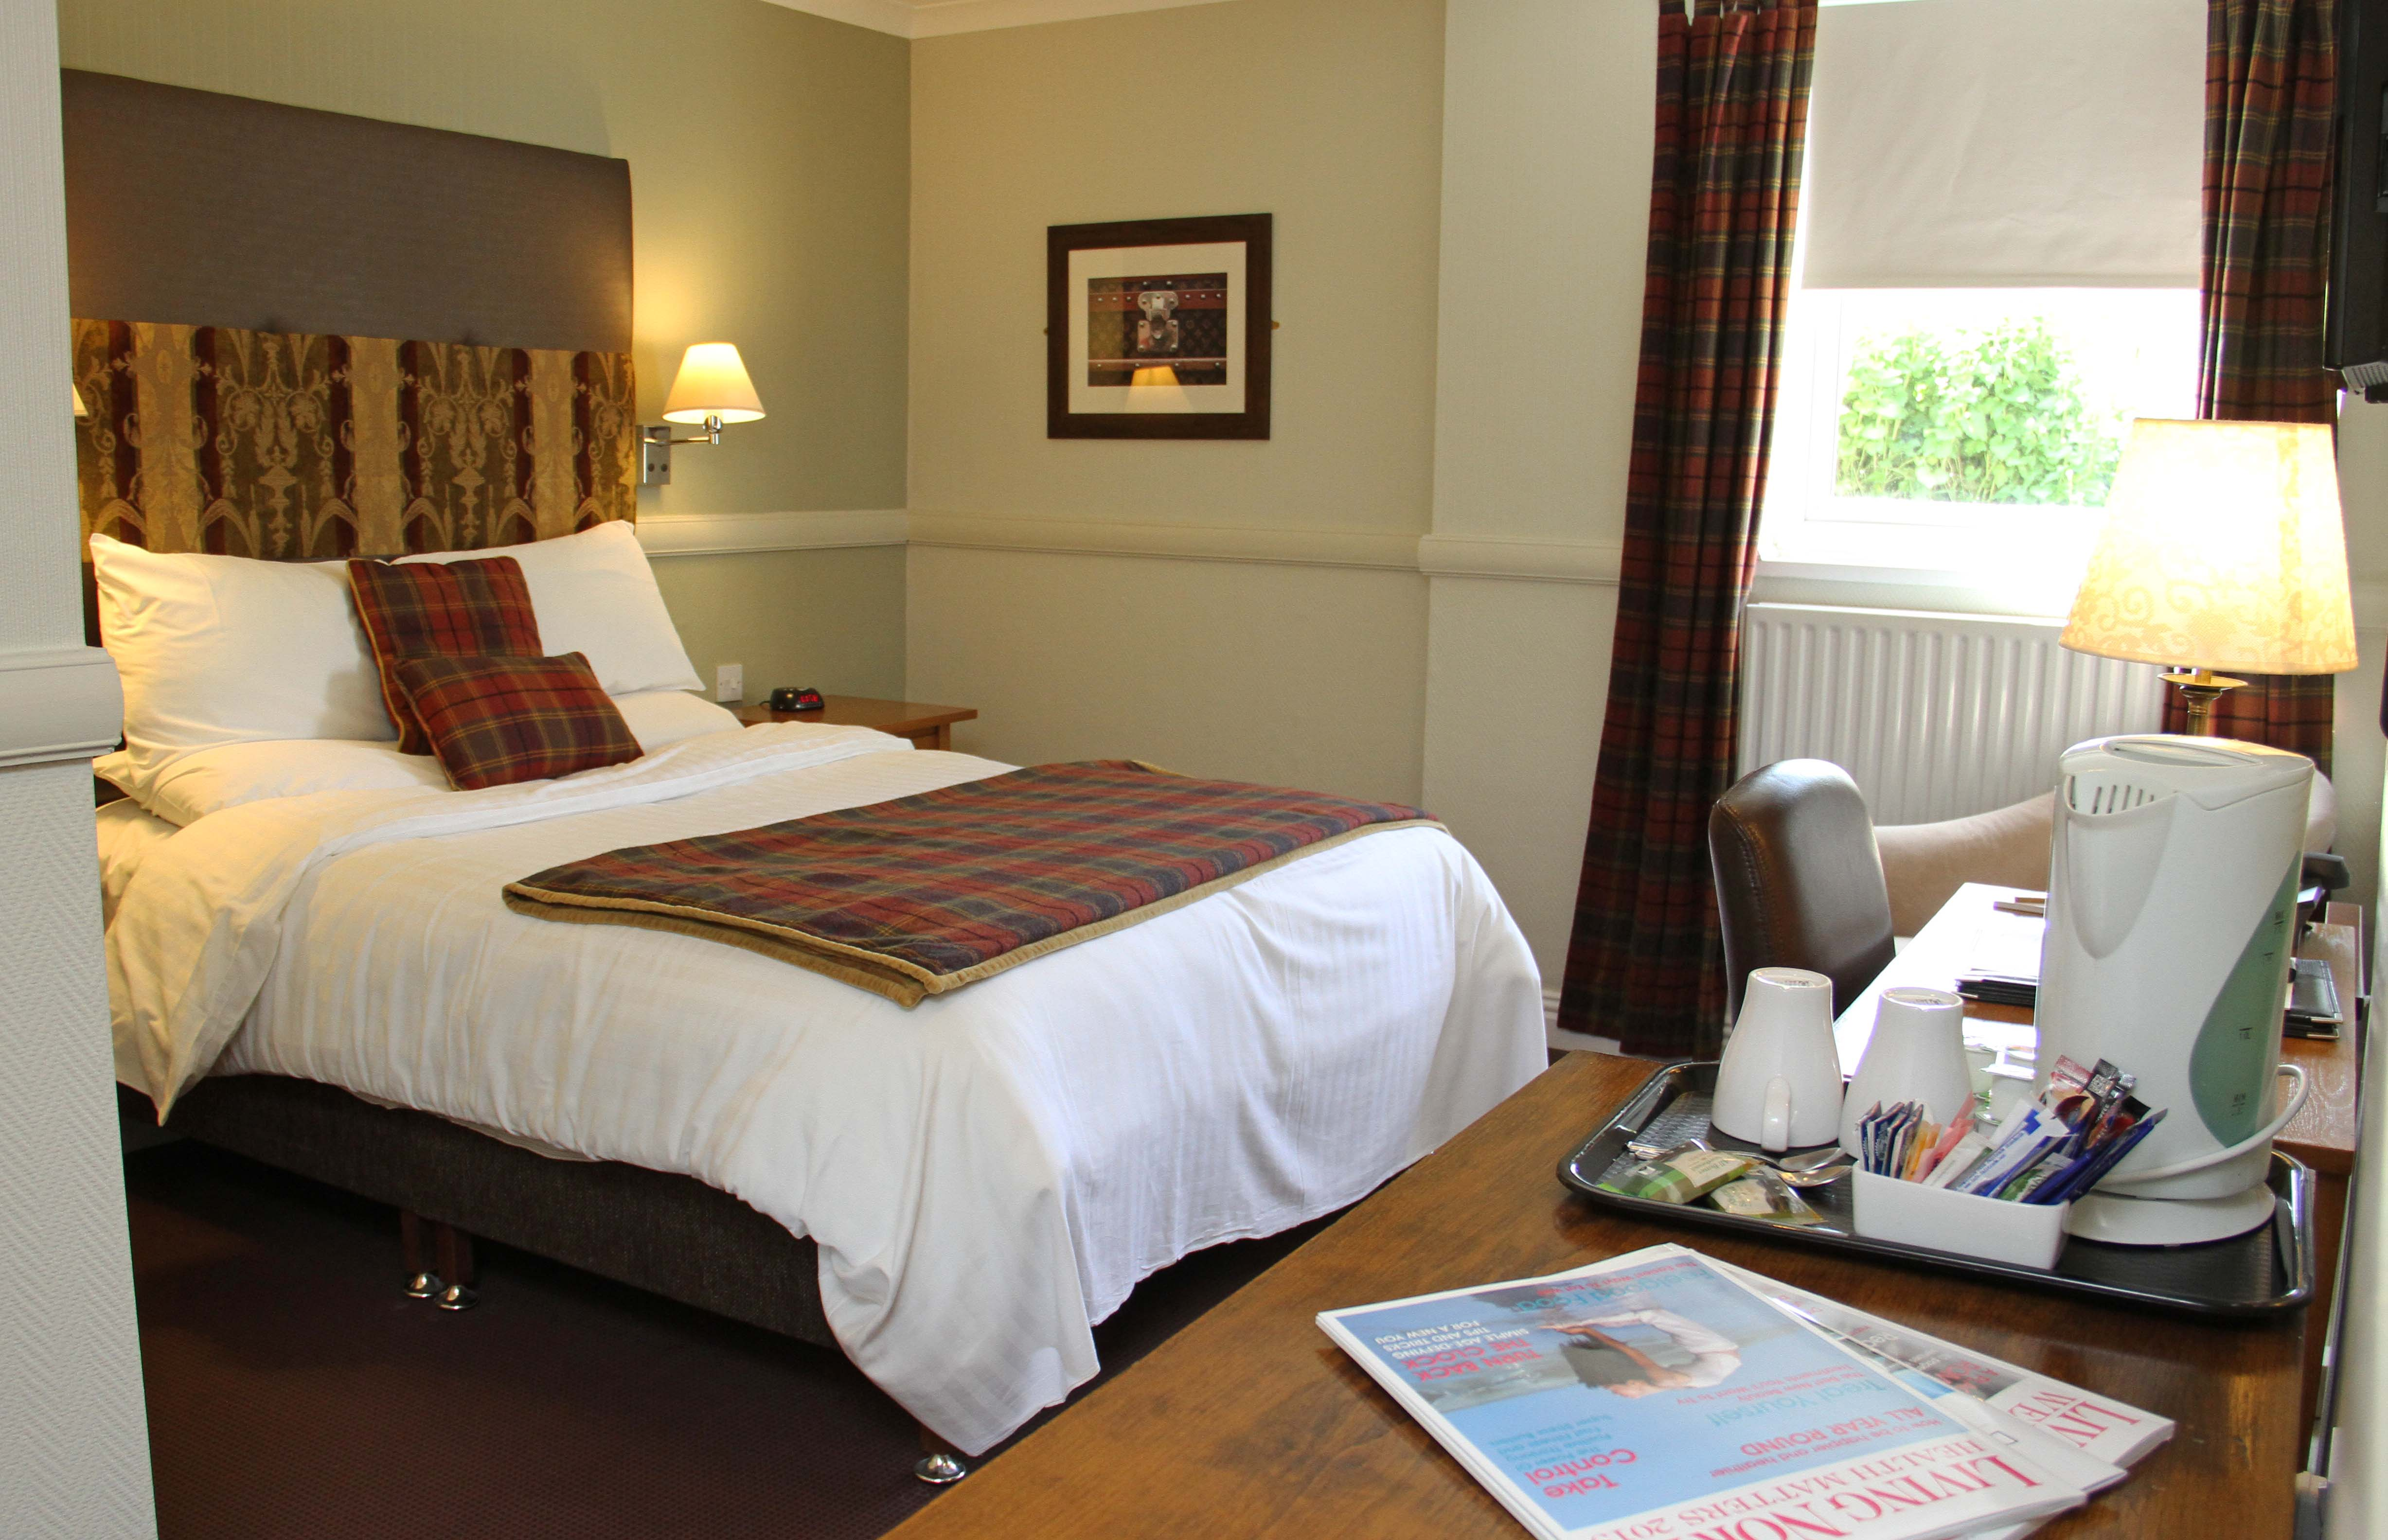 Courtyard, Double Room for Sole Occupancy